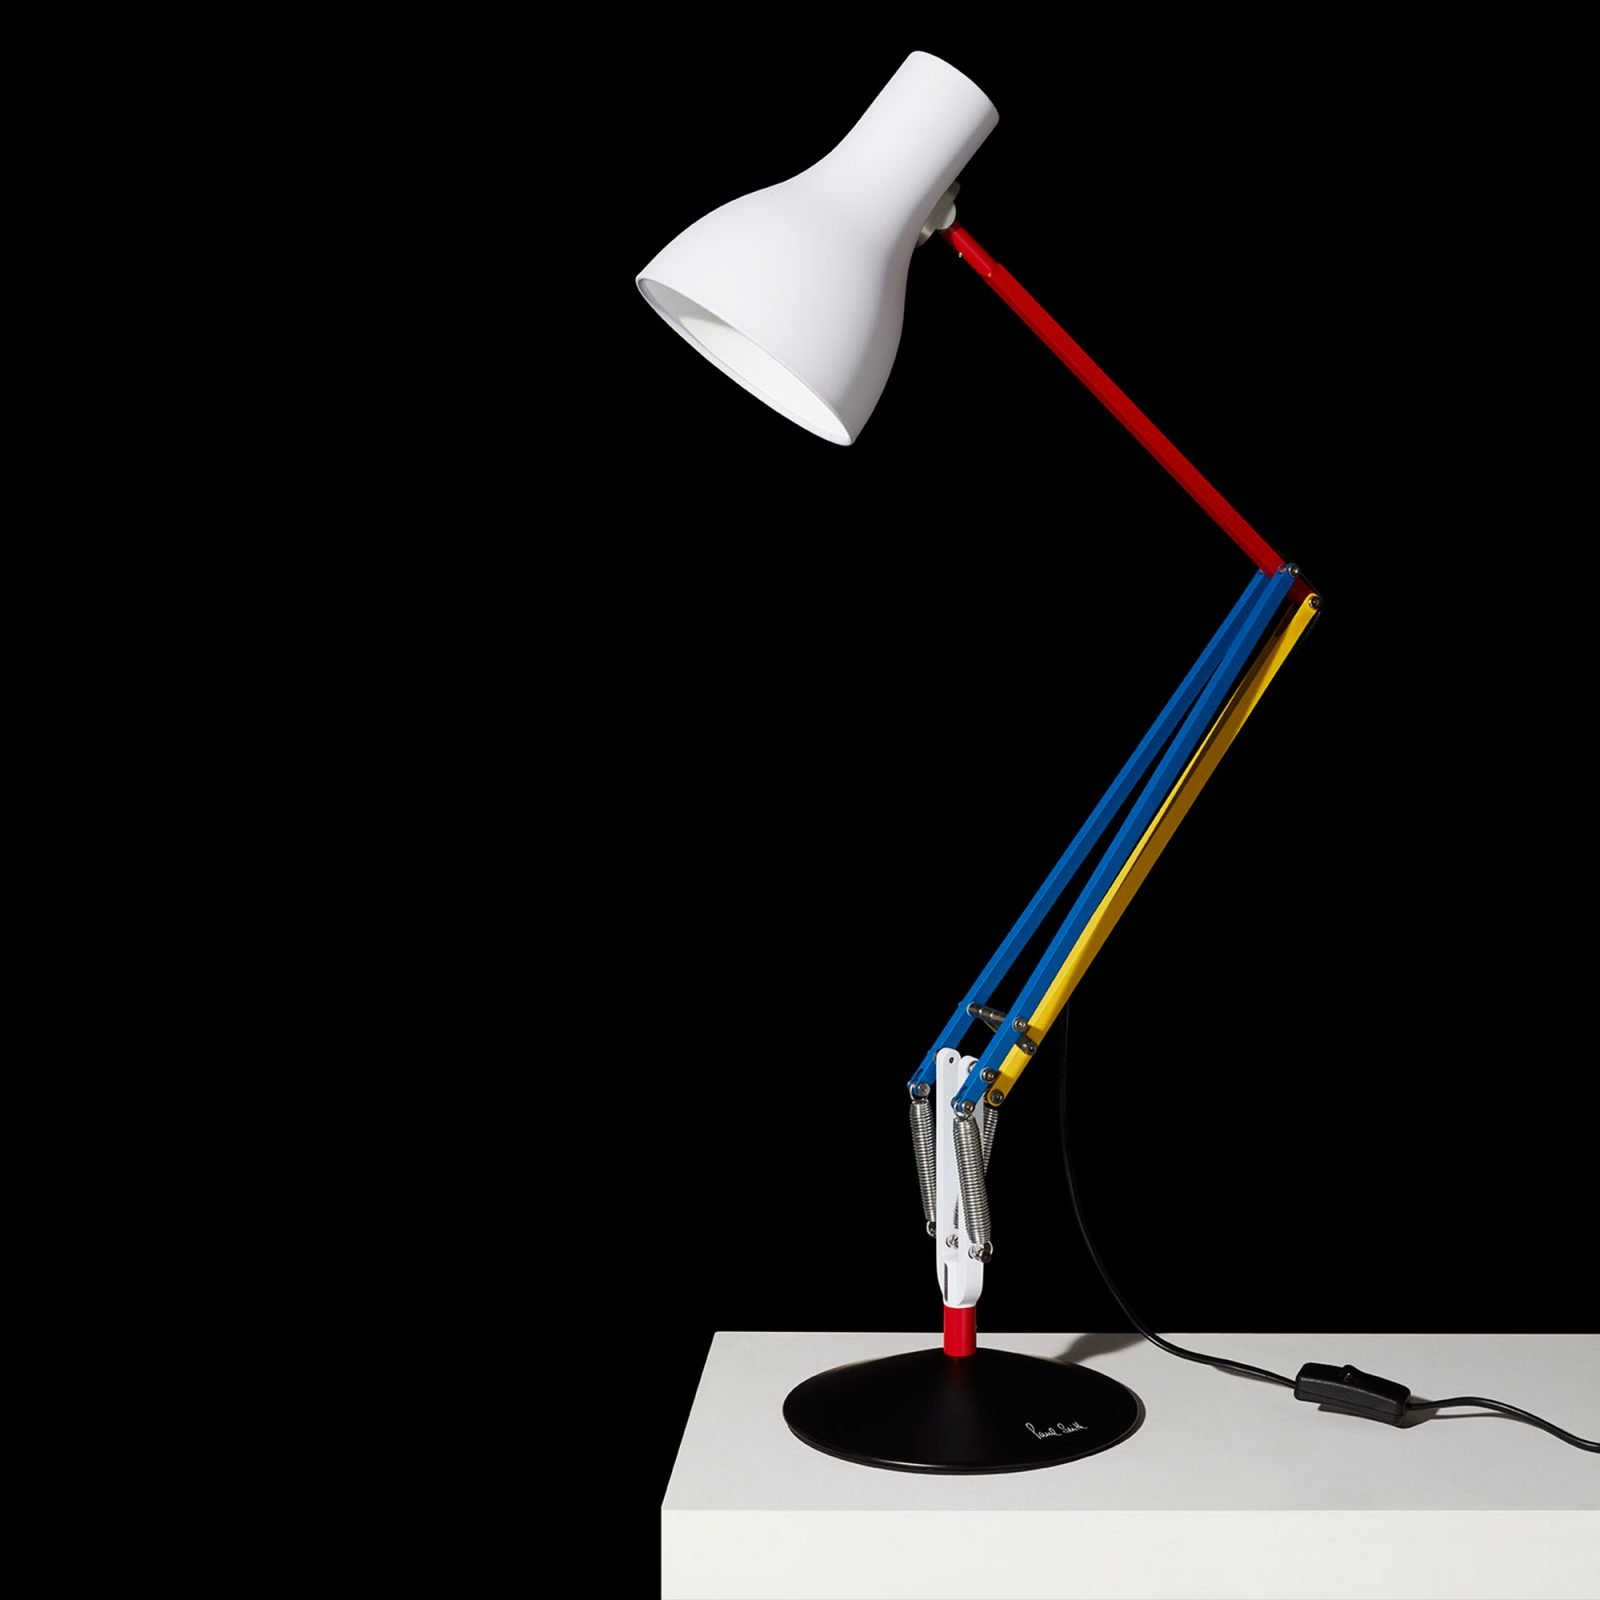 type-75-desk-lamp-paul-smith-edition-3